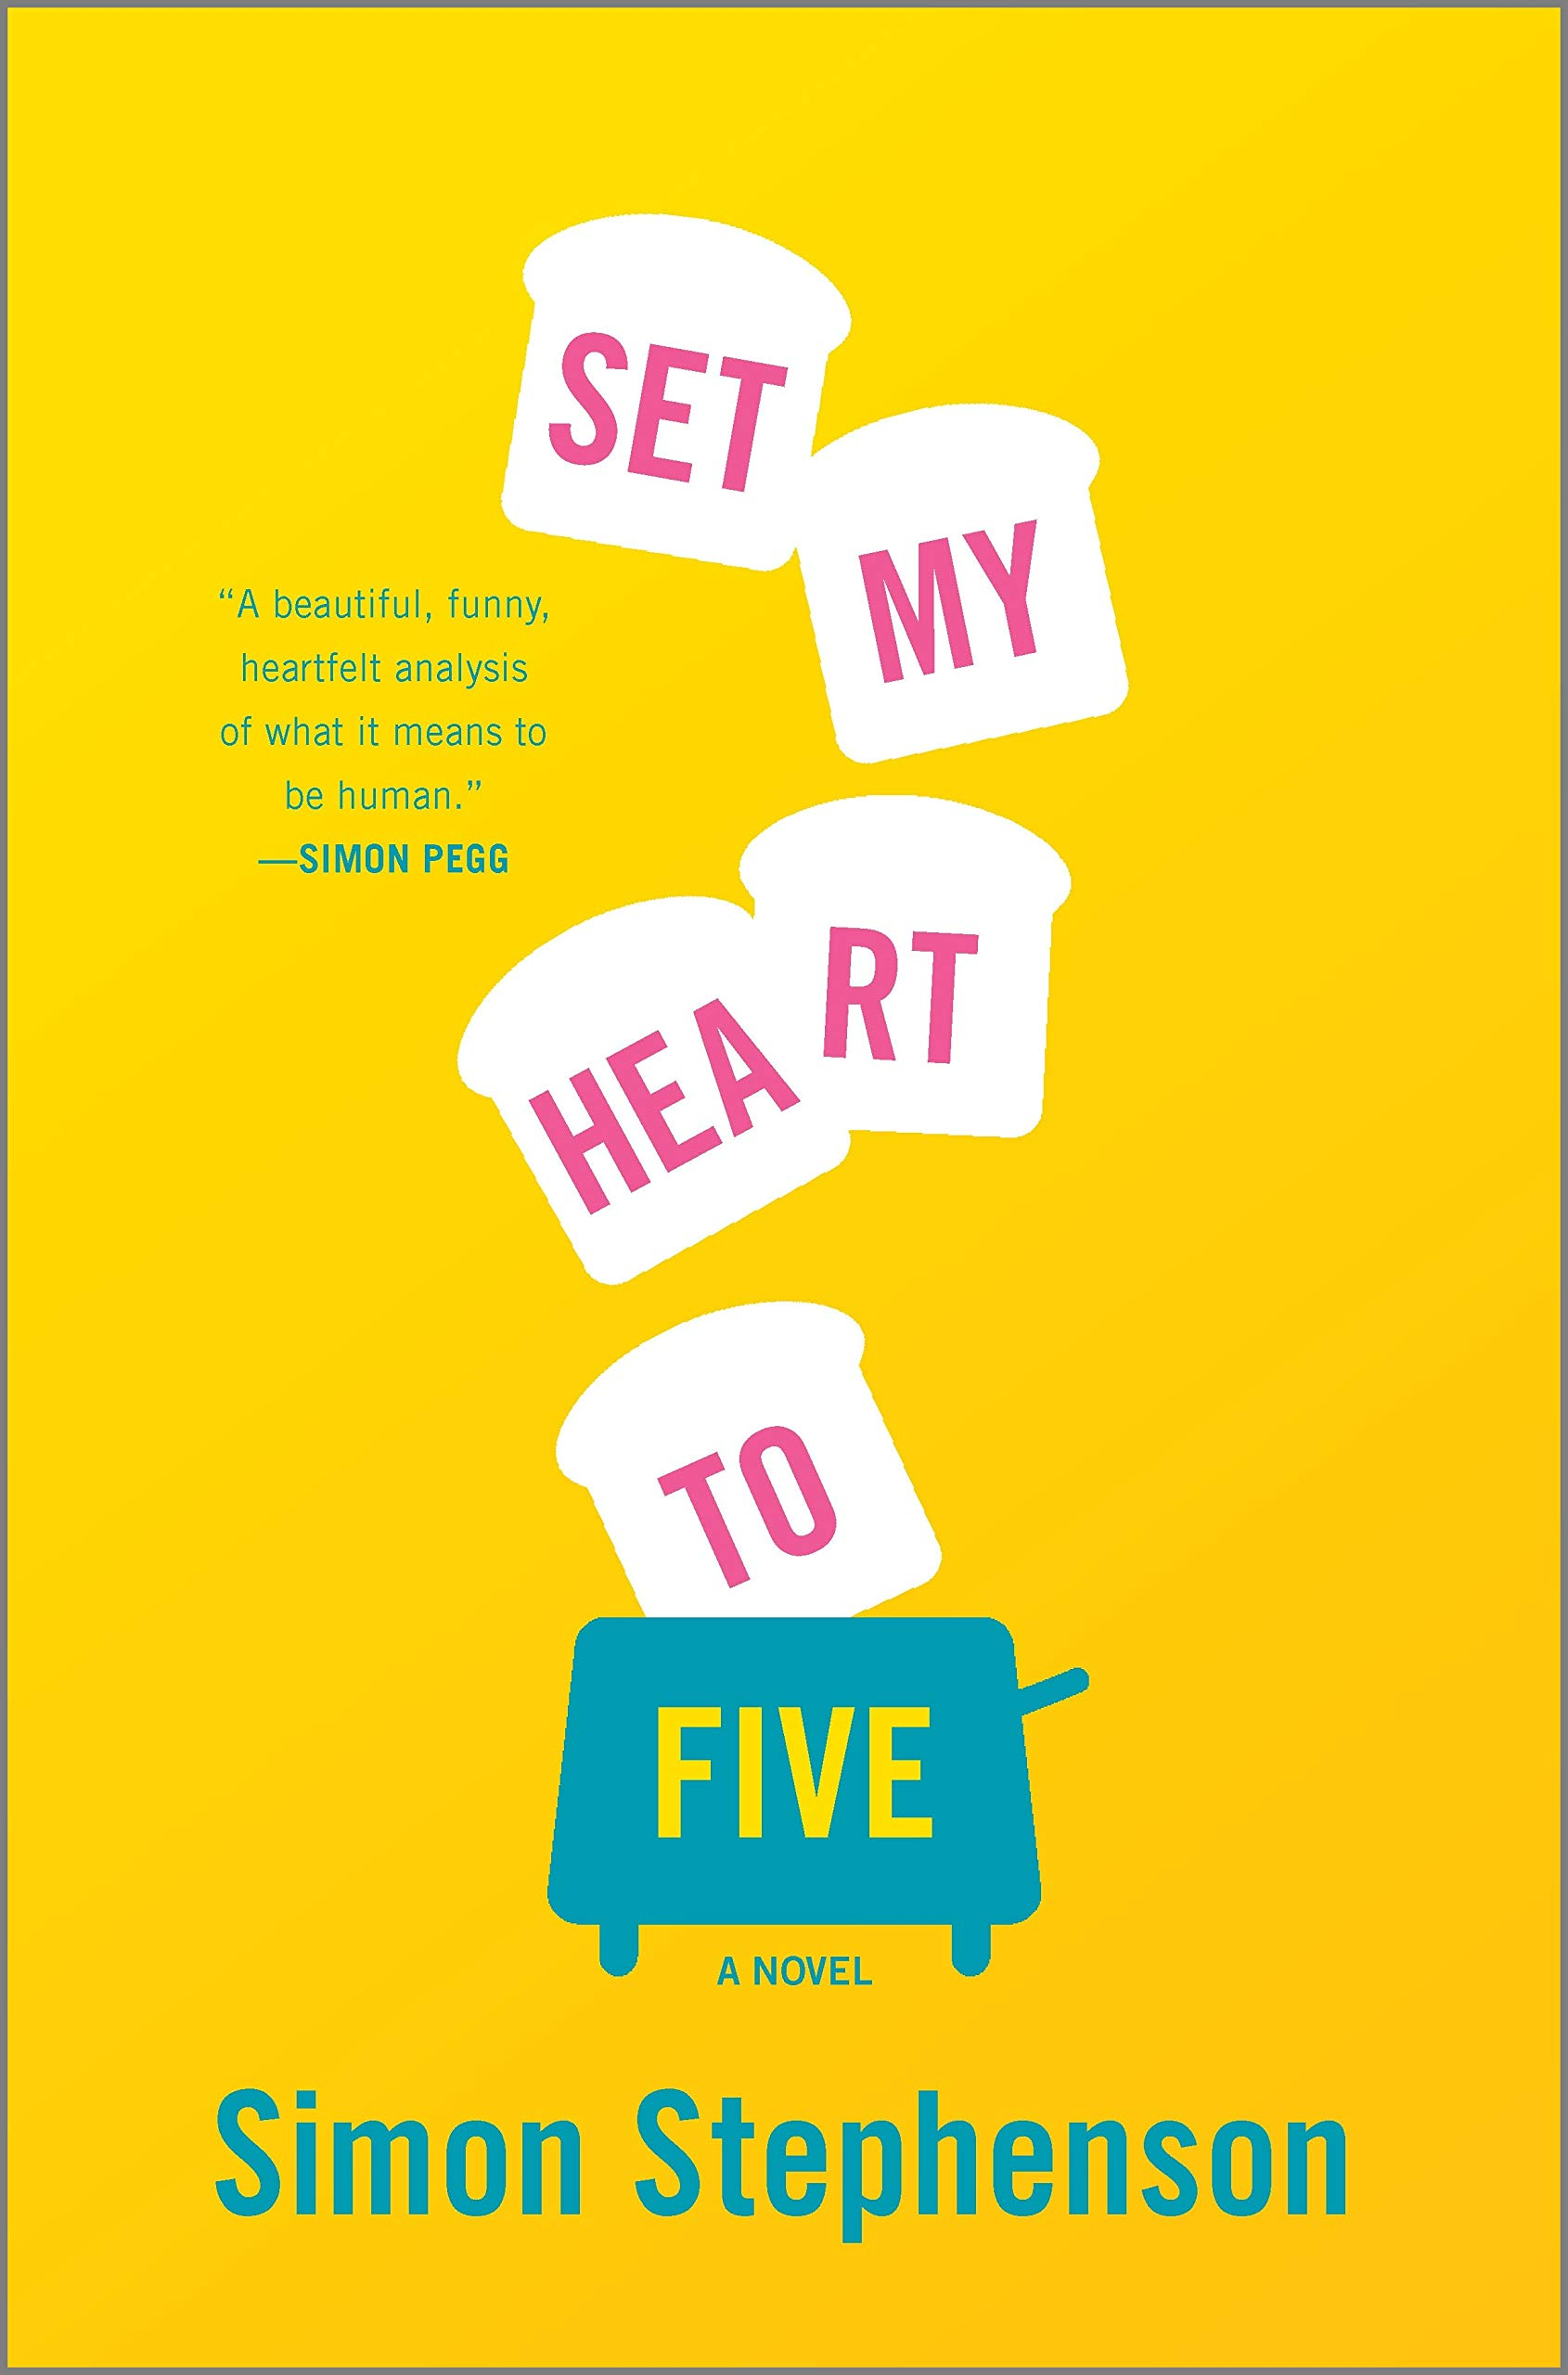 Simon Stephenson: Five Things I Learned Writing Set My Heart To Five